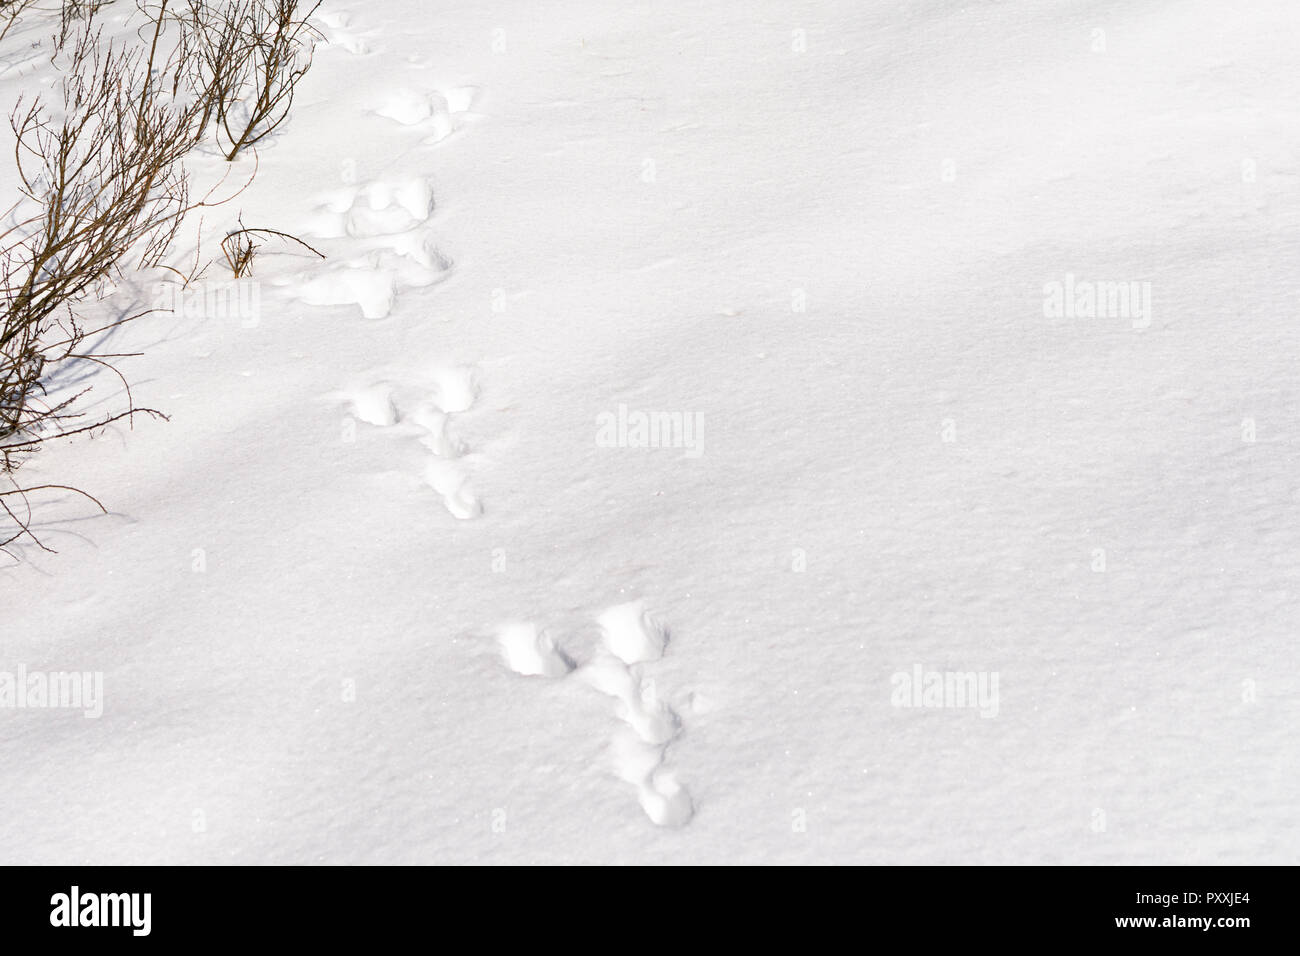 Hare foot tracks in snow forest. winter background - Stock Image